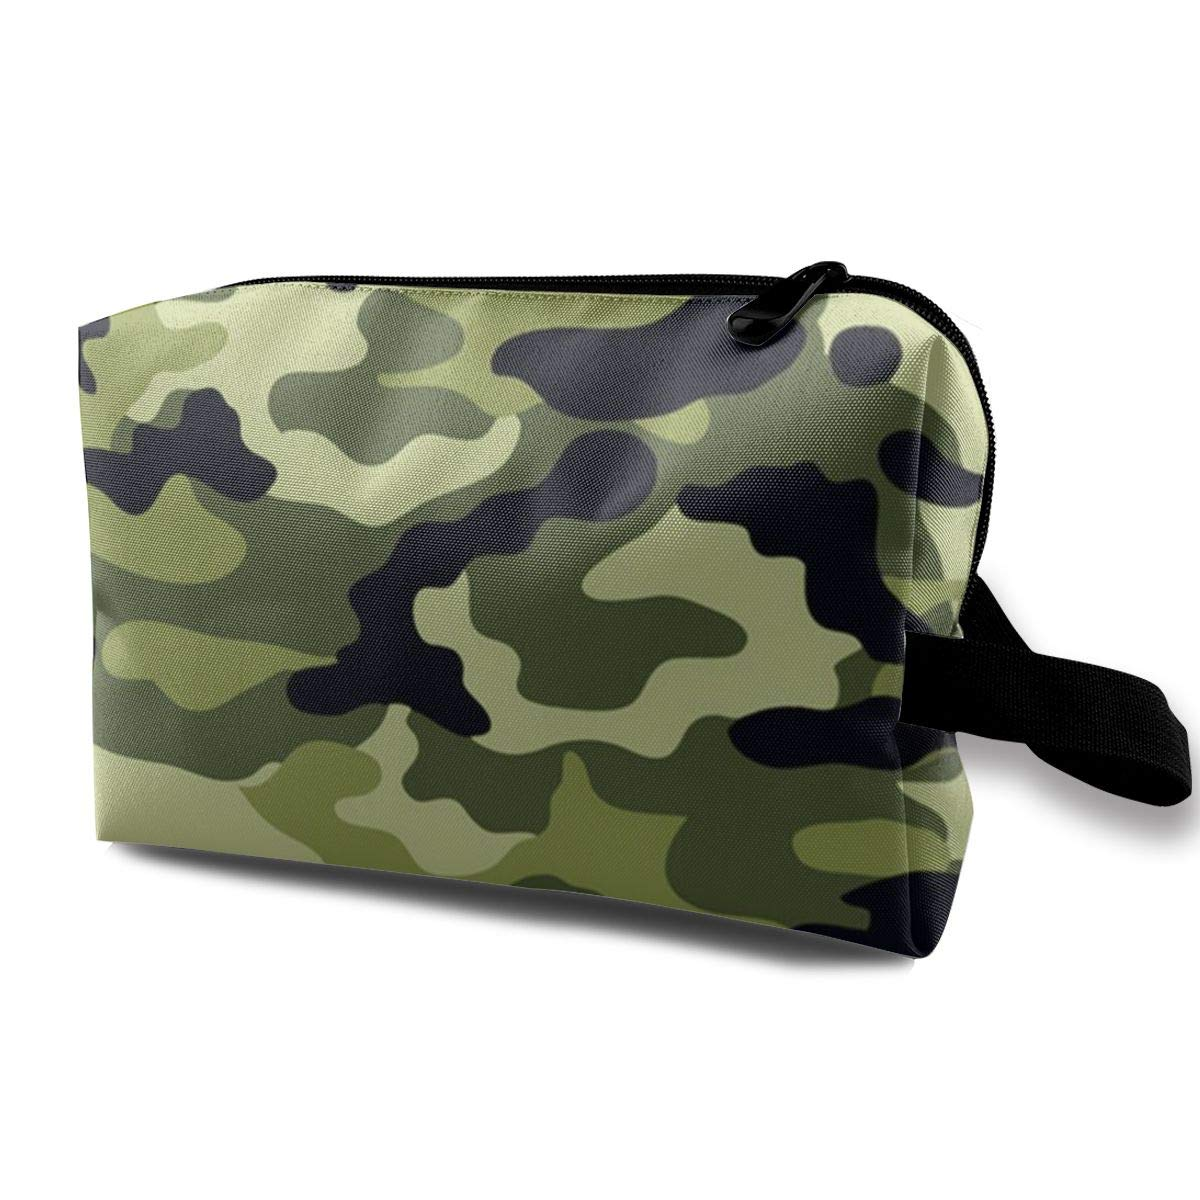 Camo Green Cosmetic Bag Makeup Bags For Women,Travel Makeup Bags Roomy Toiletry Bag Accessories Organizer With Zipper